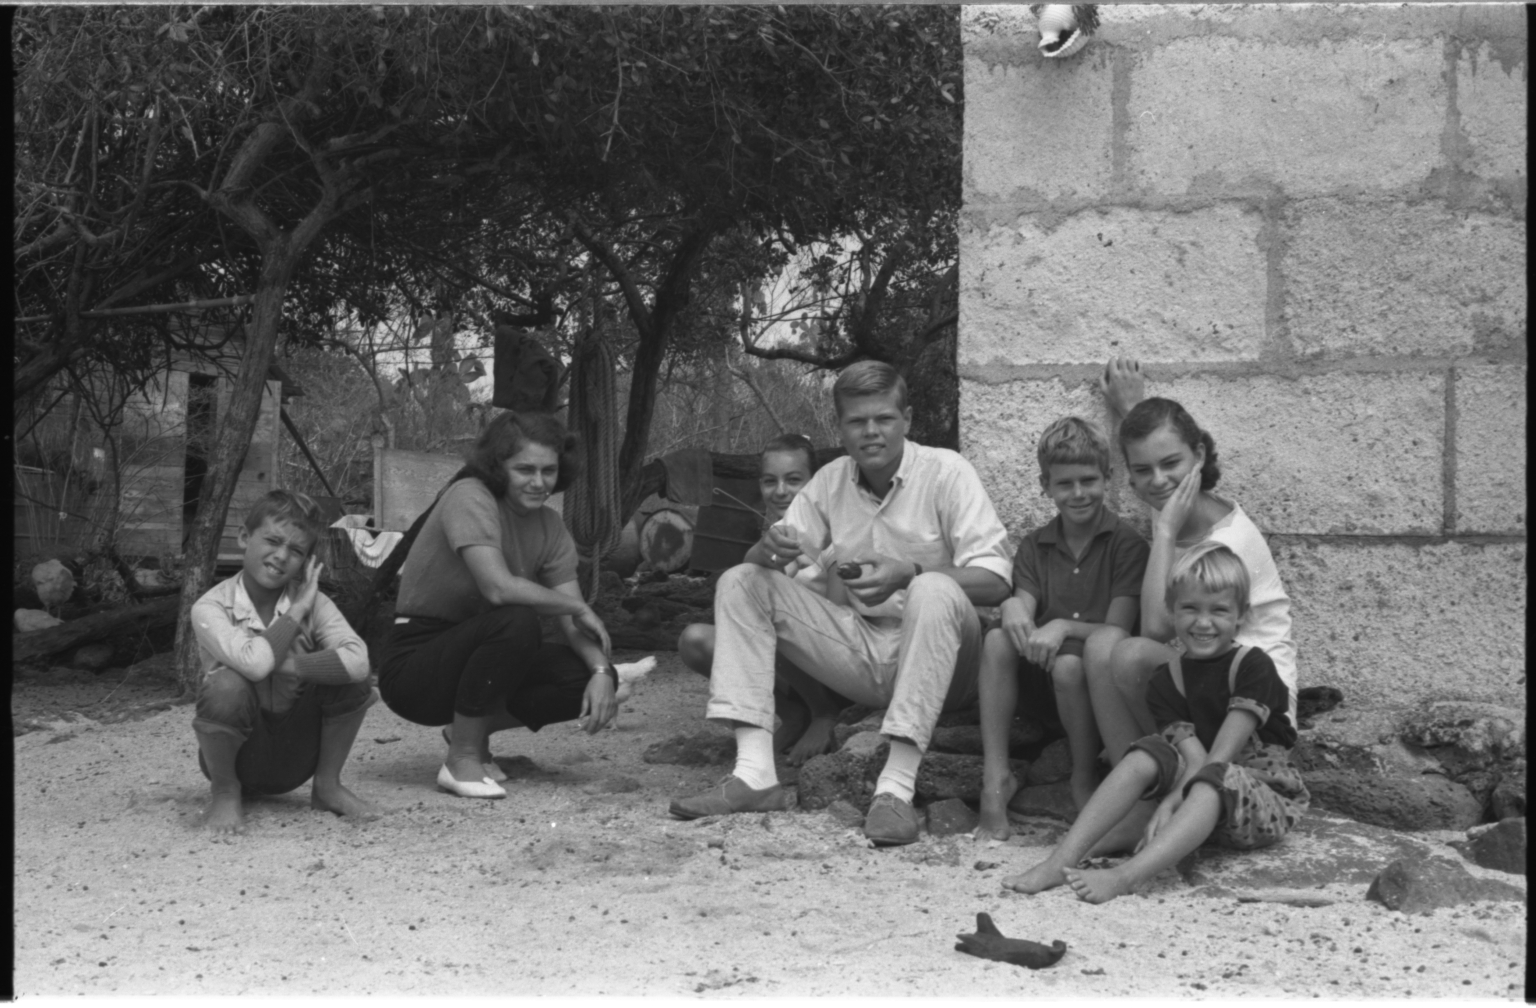 Jack Murphy and children in Galapagos Islands.